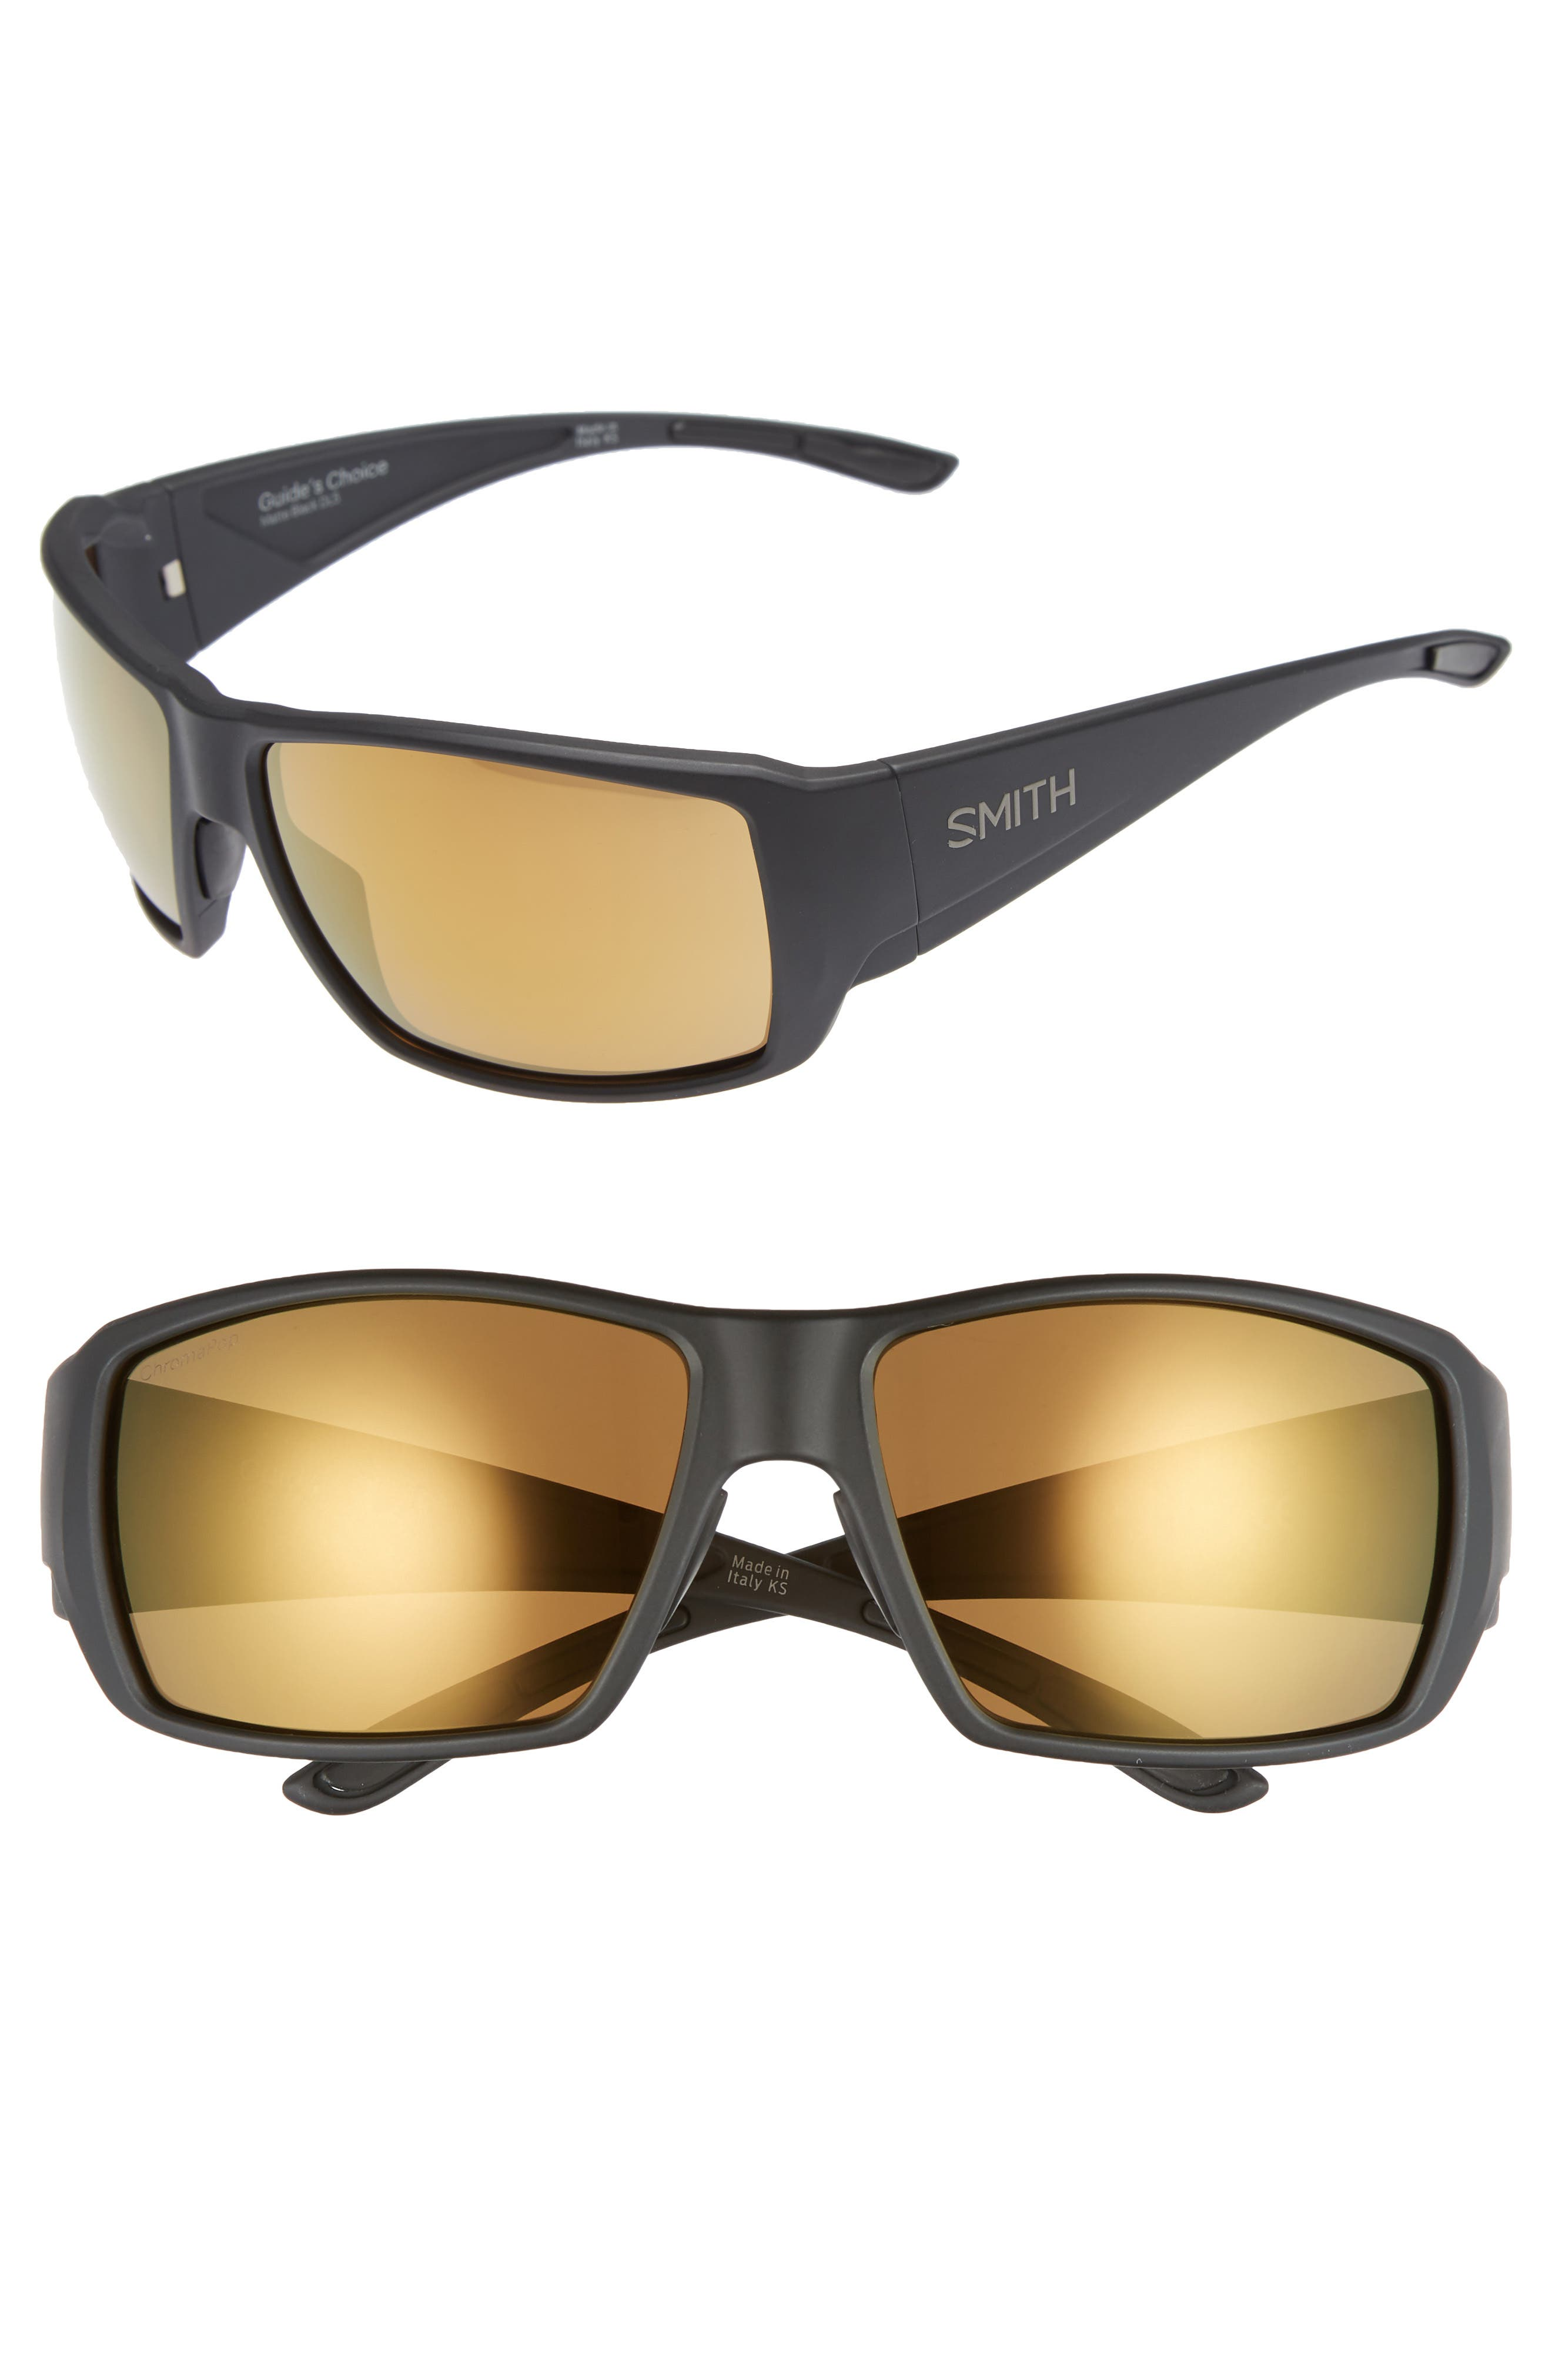 SMITH GUIDE'S CHOICE 62MM CHROMAPOP(TM) SPORT SUNGLASSES - MATTE BLACK/ BRONZE MIRROR